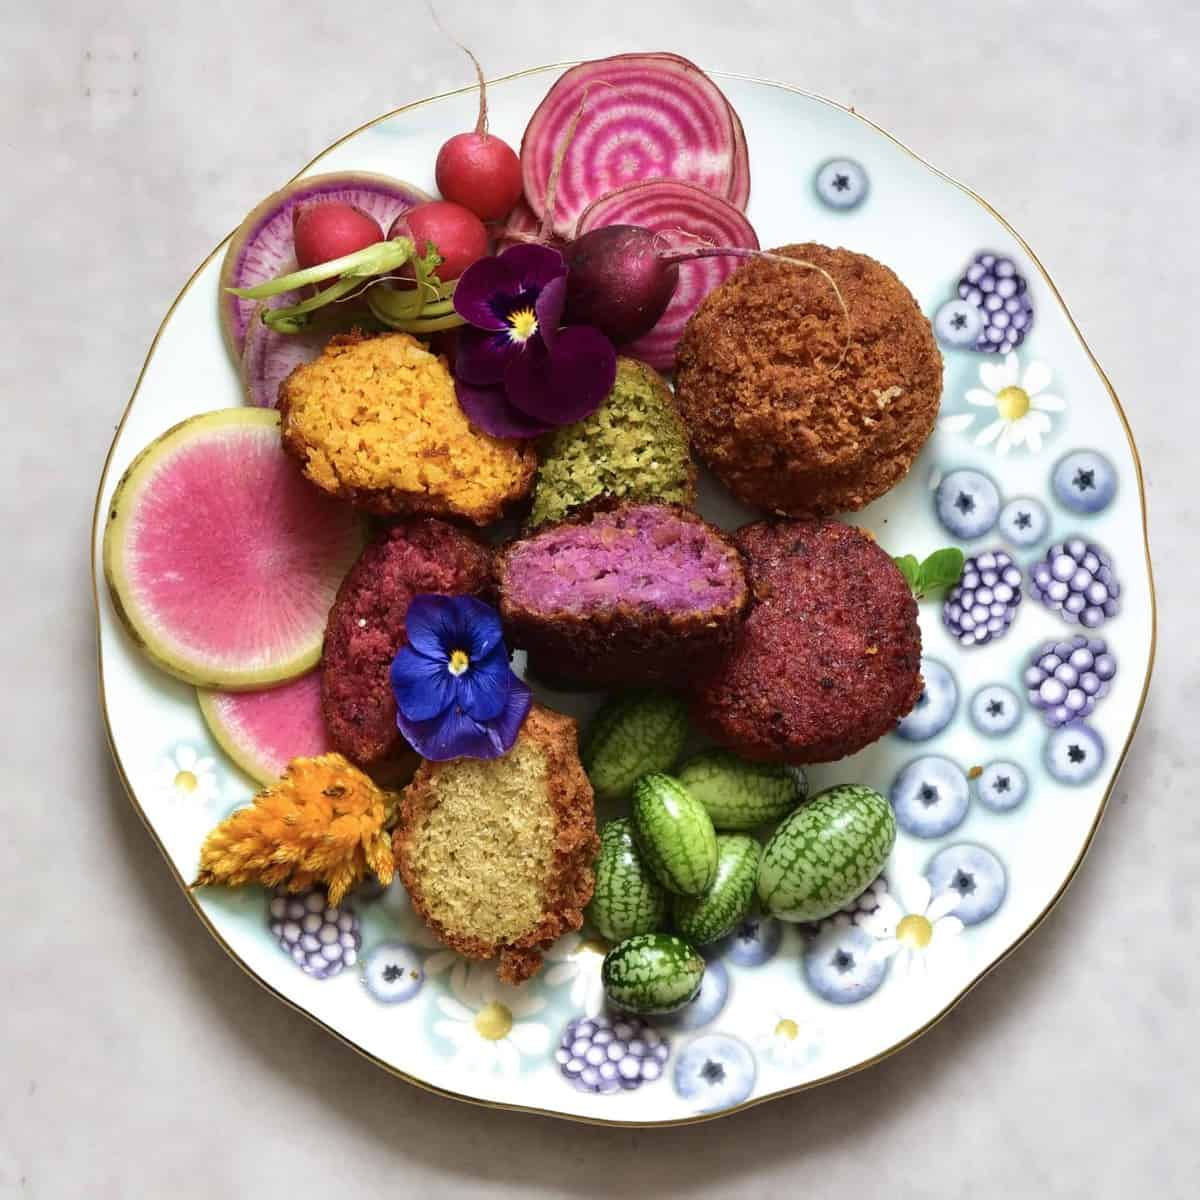 Rainbow falafel with veggies and edible flowers as part of a mezze platter